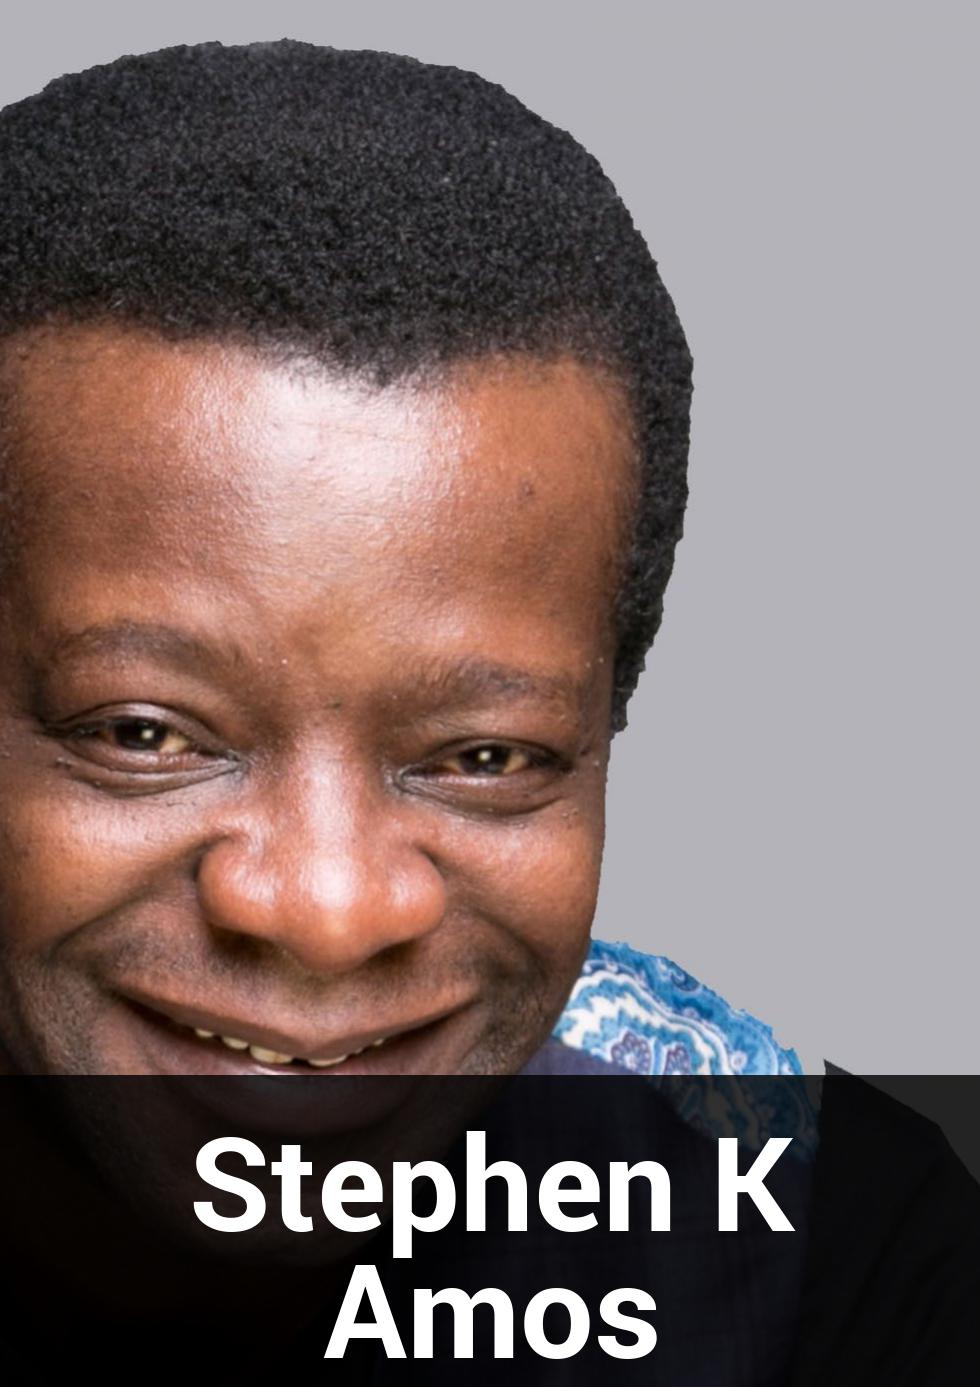 Stephen K Amos at Canberra Theatre Centre